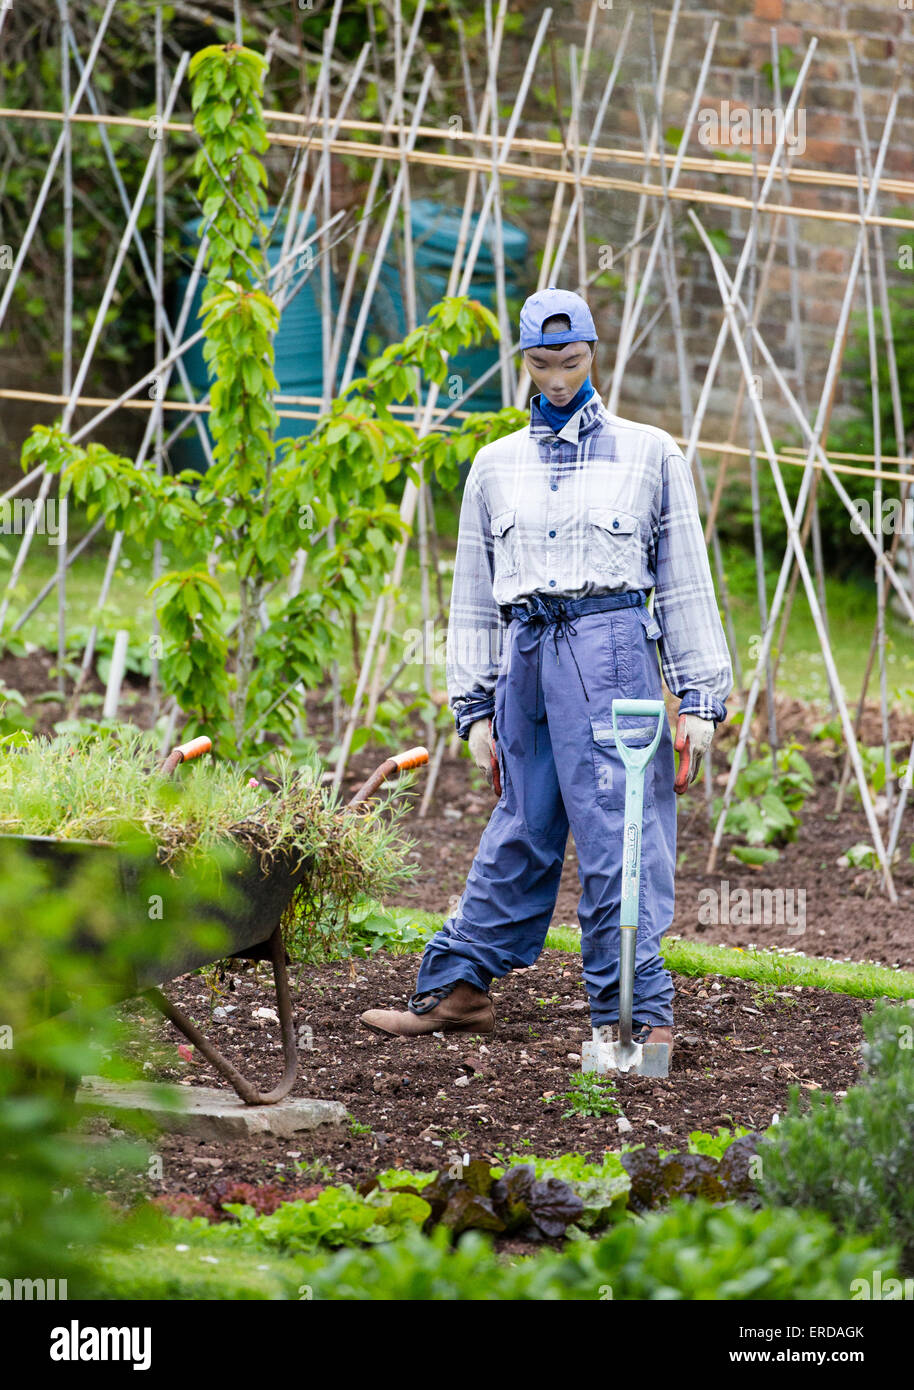 English Kitchen Garden Stylishly Dressed Scarecrow In An English Kitchen Garden With